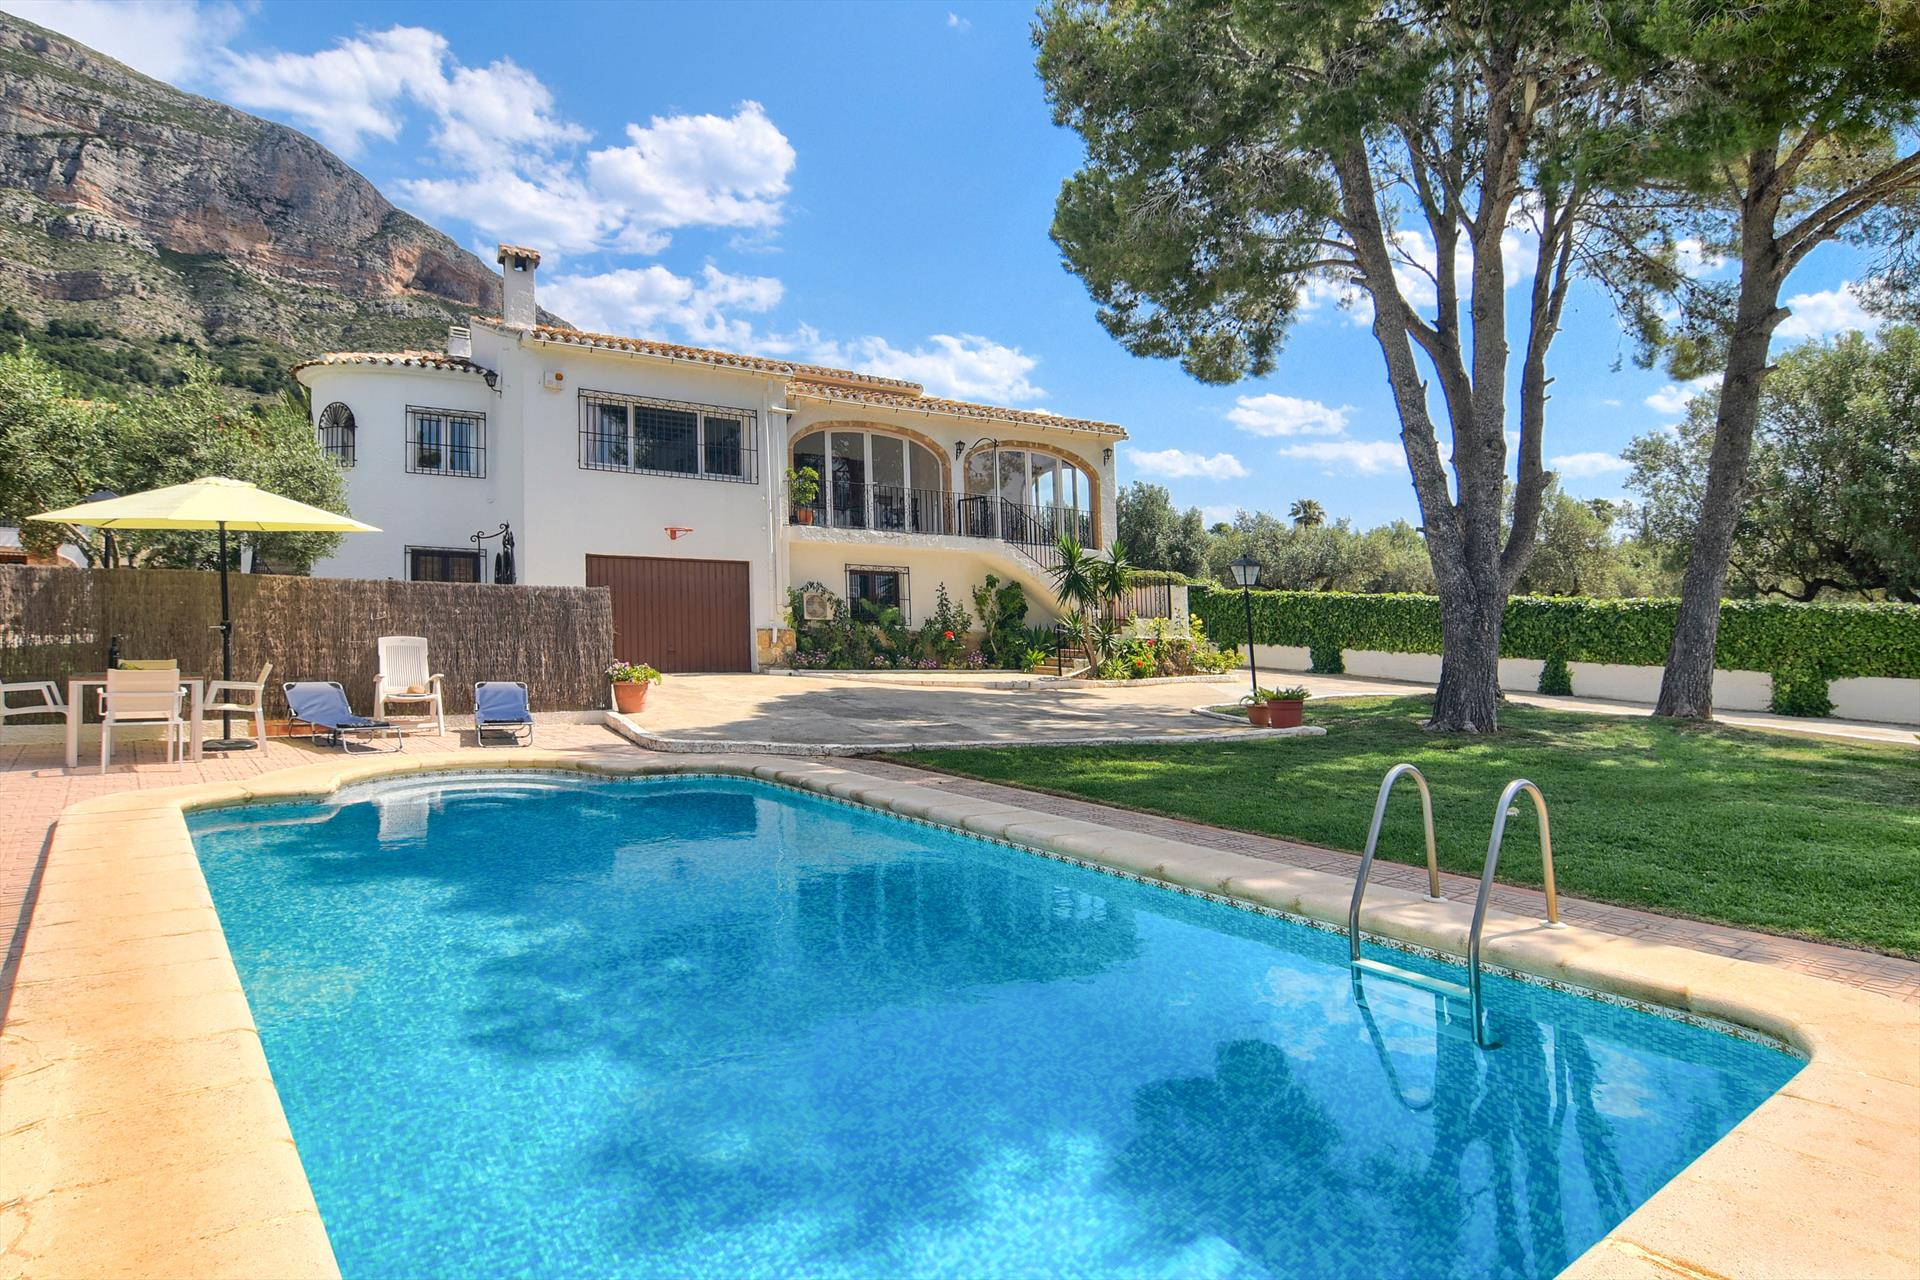 El Marques,Large villa  with private pool in Javea, on the Costa Blanca, Spain for 6 persons...